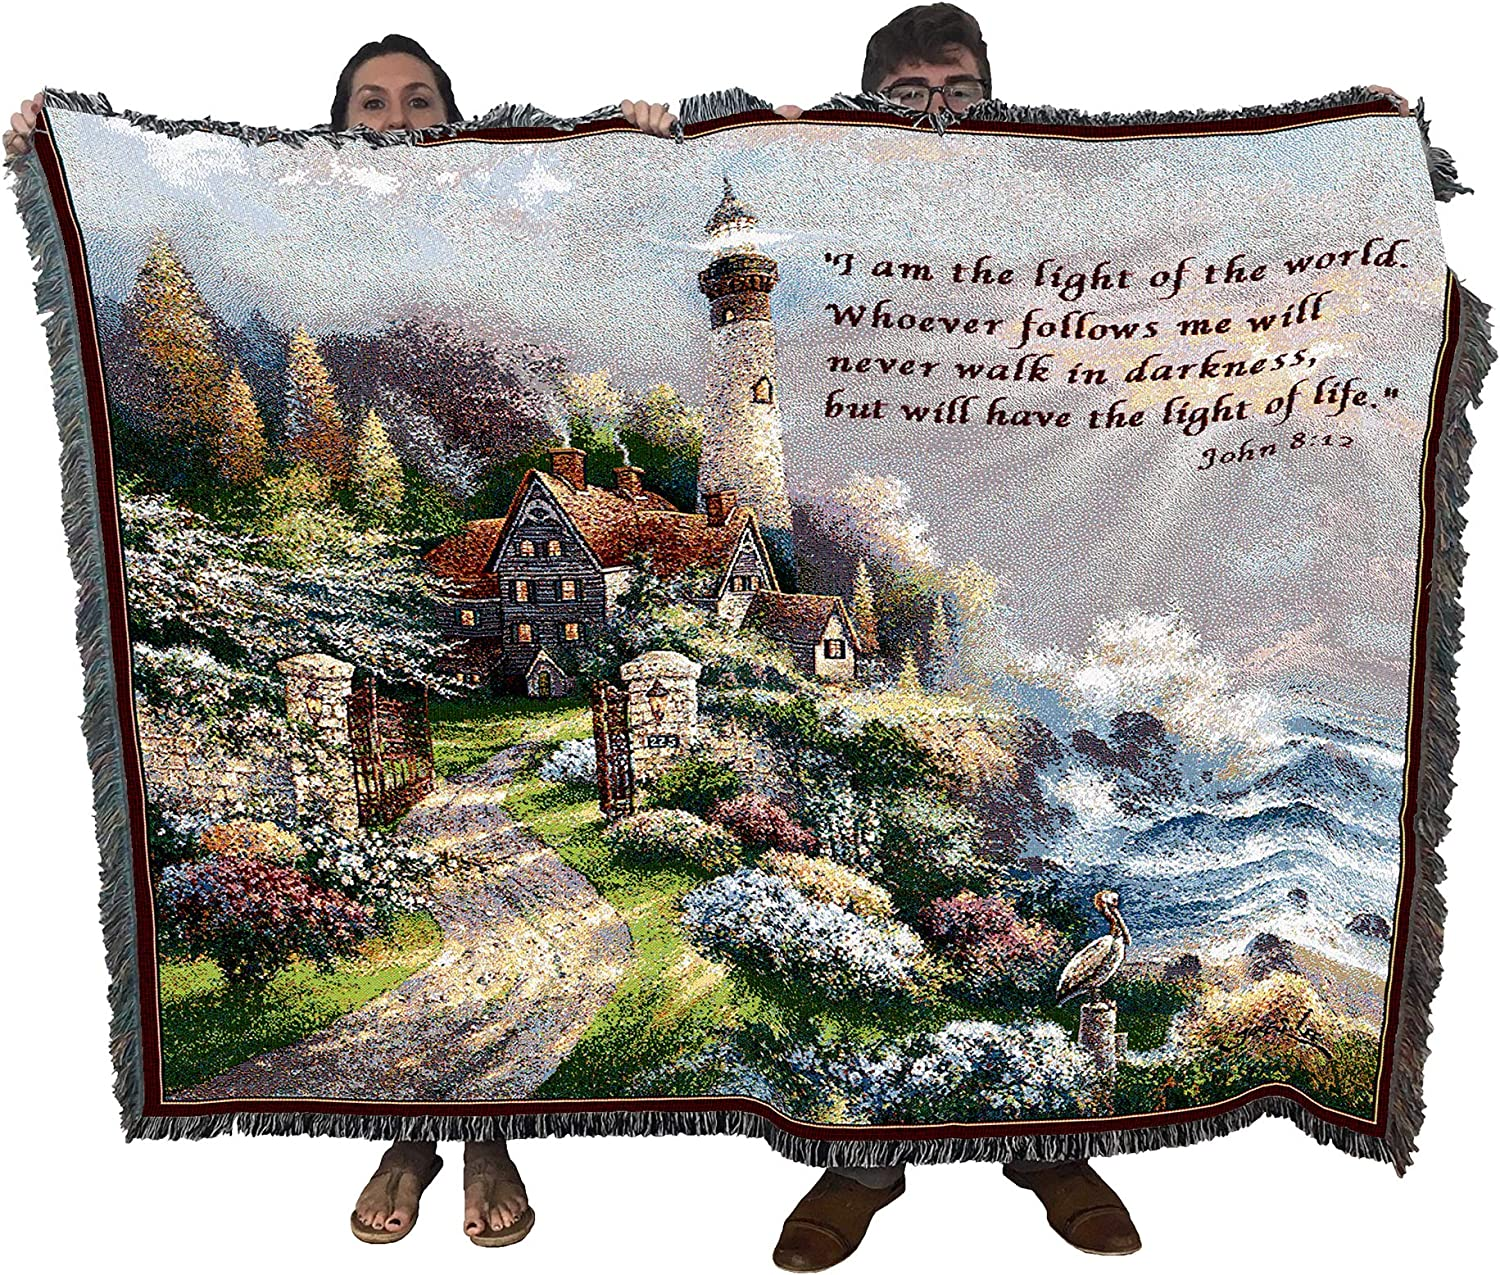 Pure Country Weavers Coastal Splendor with Scripture - I am The Light - John 8:12 - James Lee - Blanket Throw Woven from Cotton - Made in The USA (72x54)